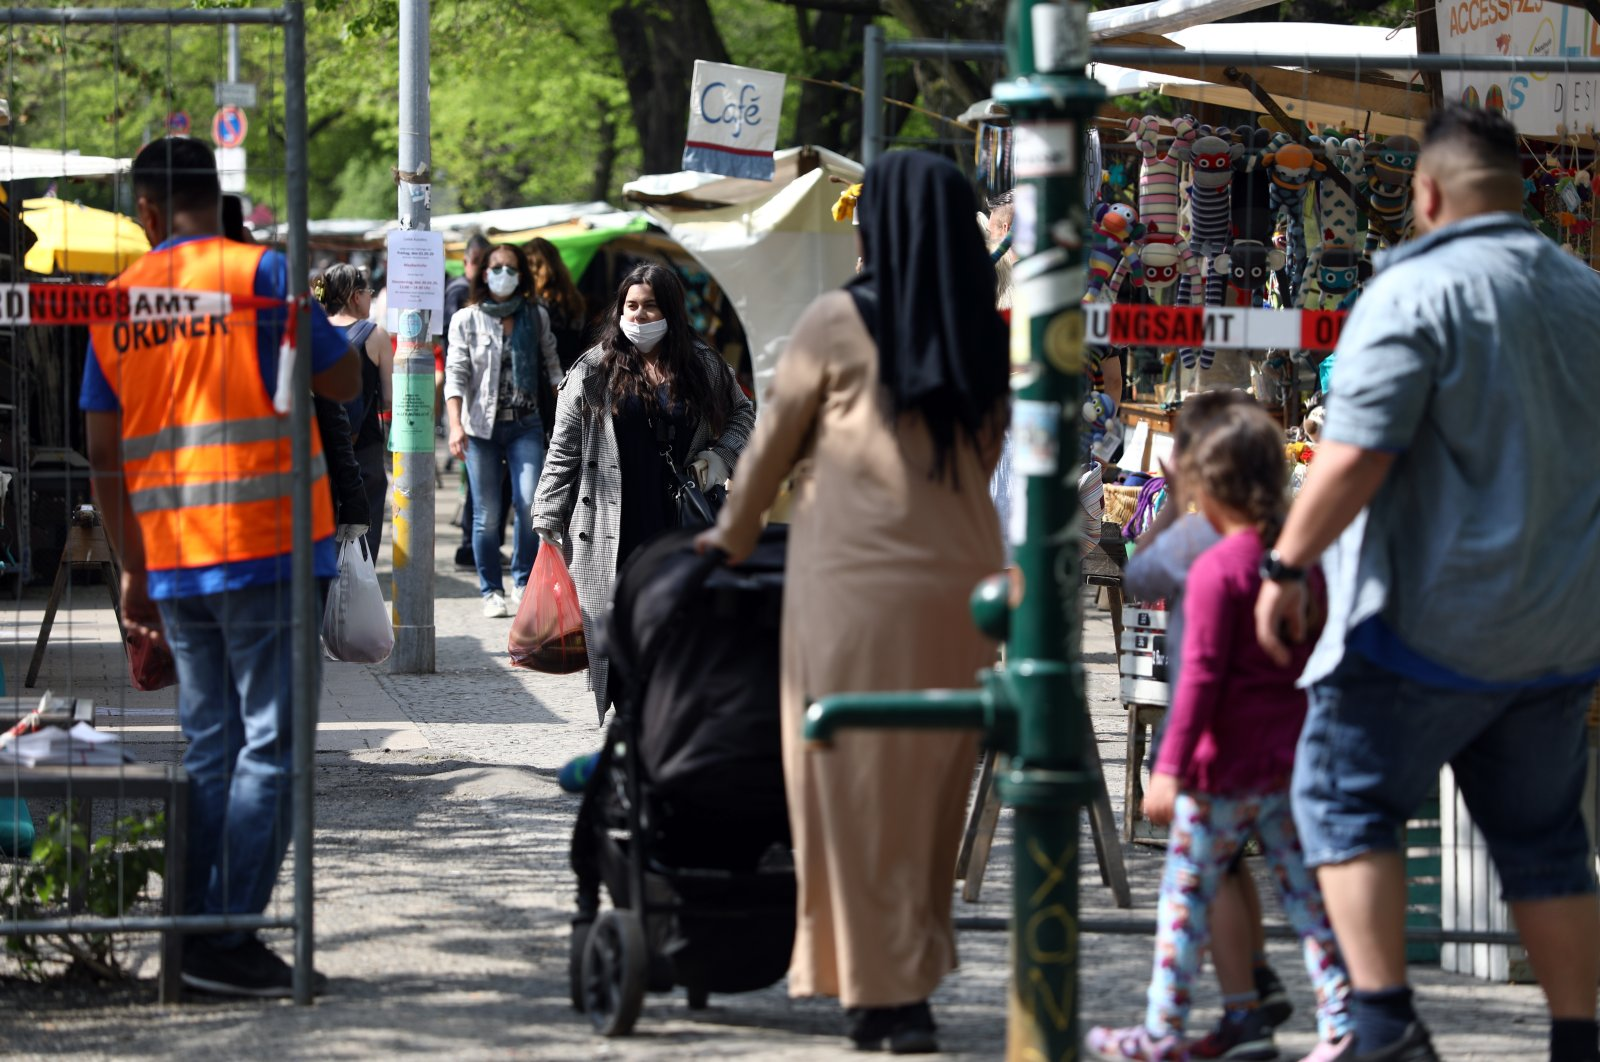 A steward regulates the access to a market at the Maybachufer in compliance with the current distance regulations, as the spread of the coronavirus disease (COVID-19) continues in Berlin, Germany, April 28, 2020. (Reuters Photo)